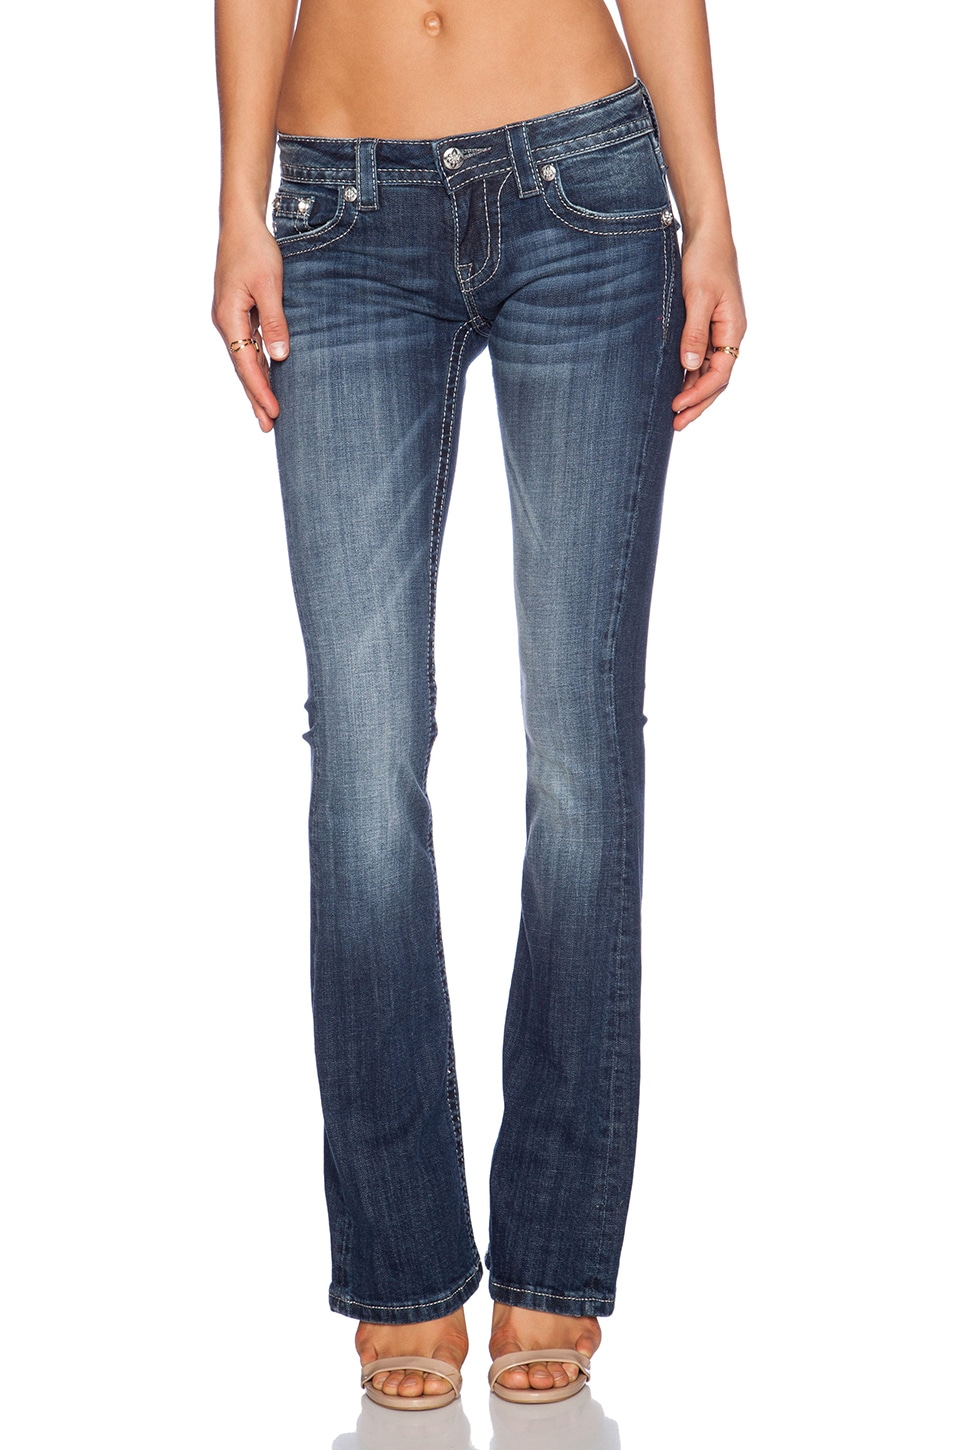 Miss Me Jeans Bootcut Jean in MK 302